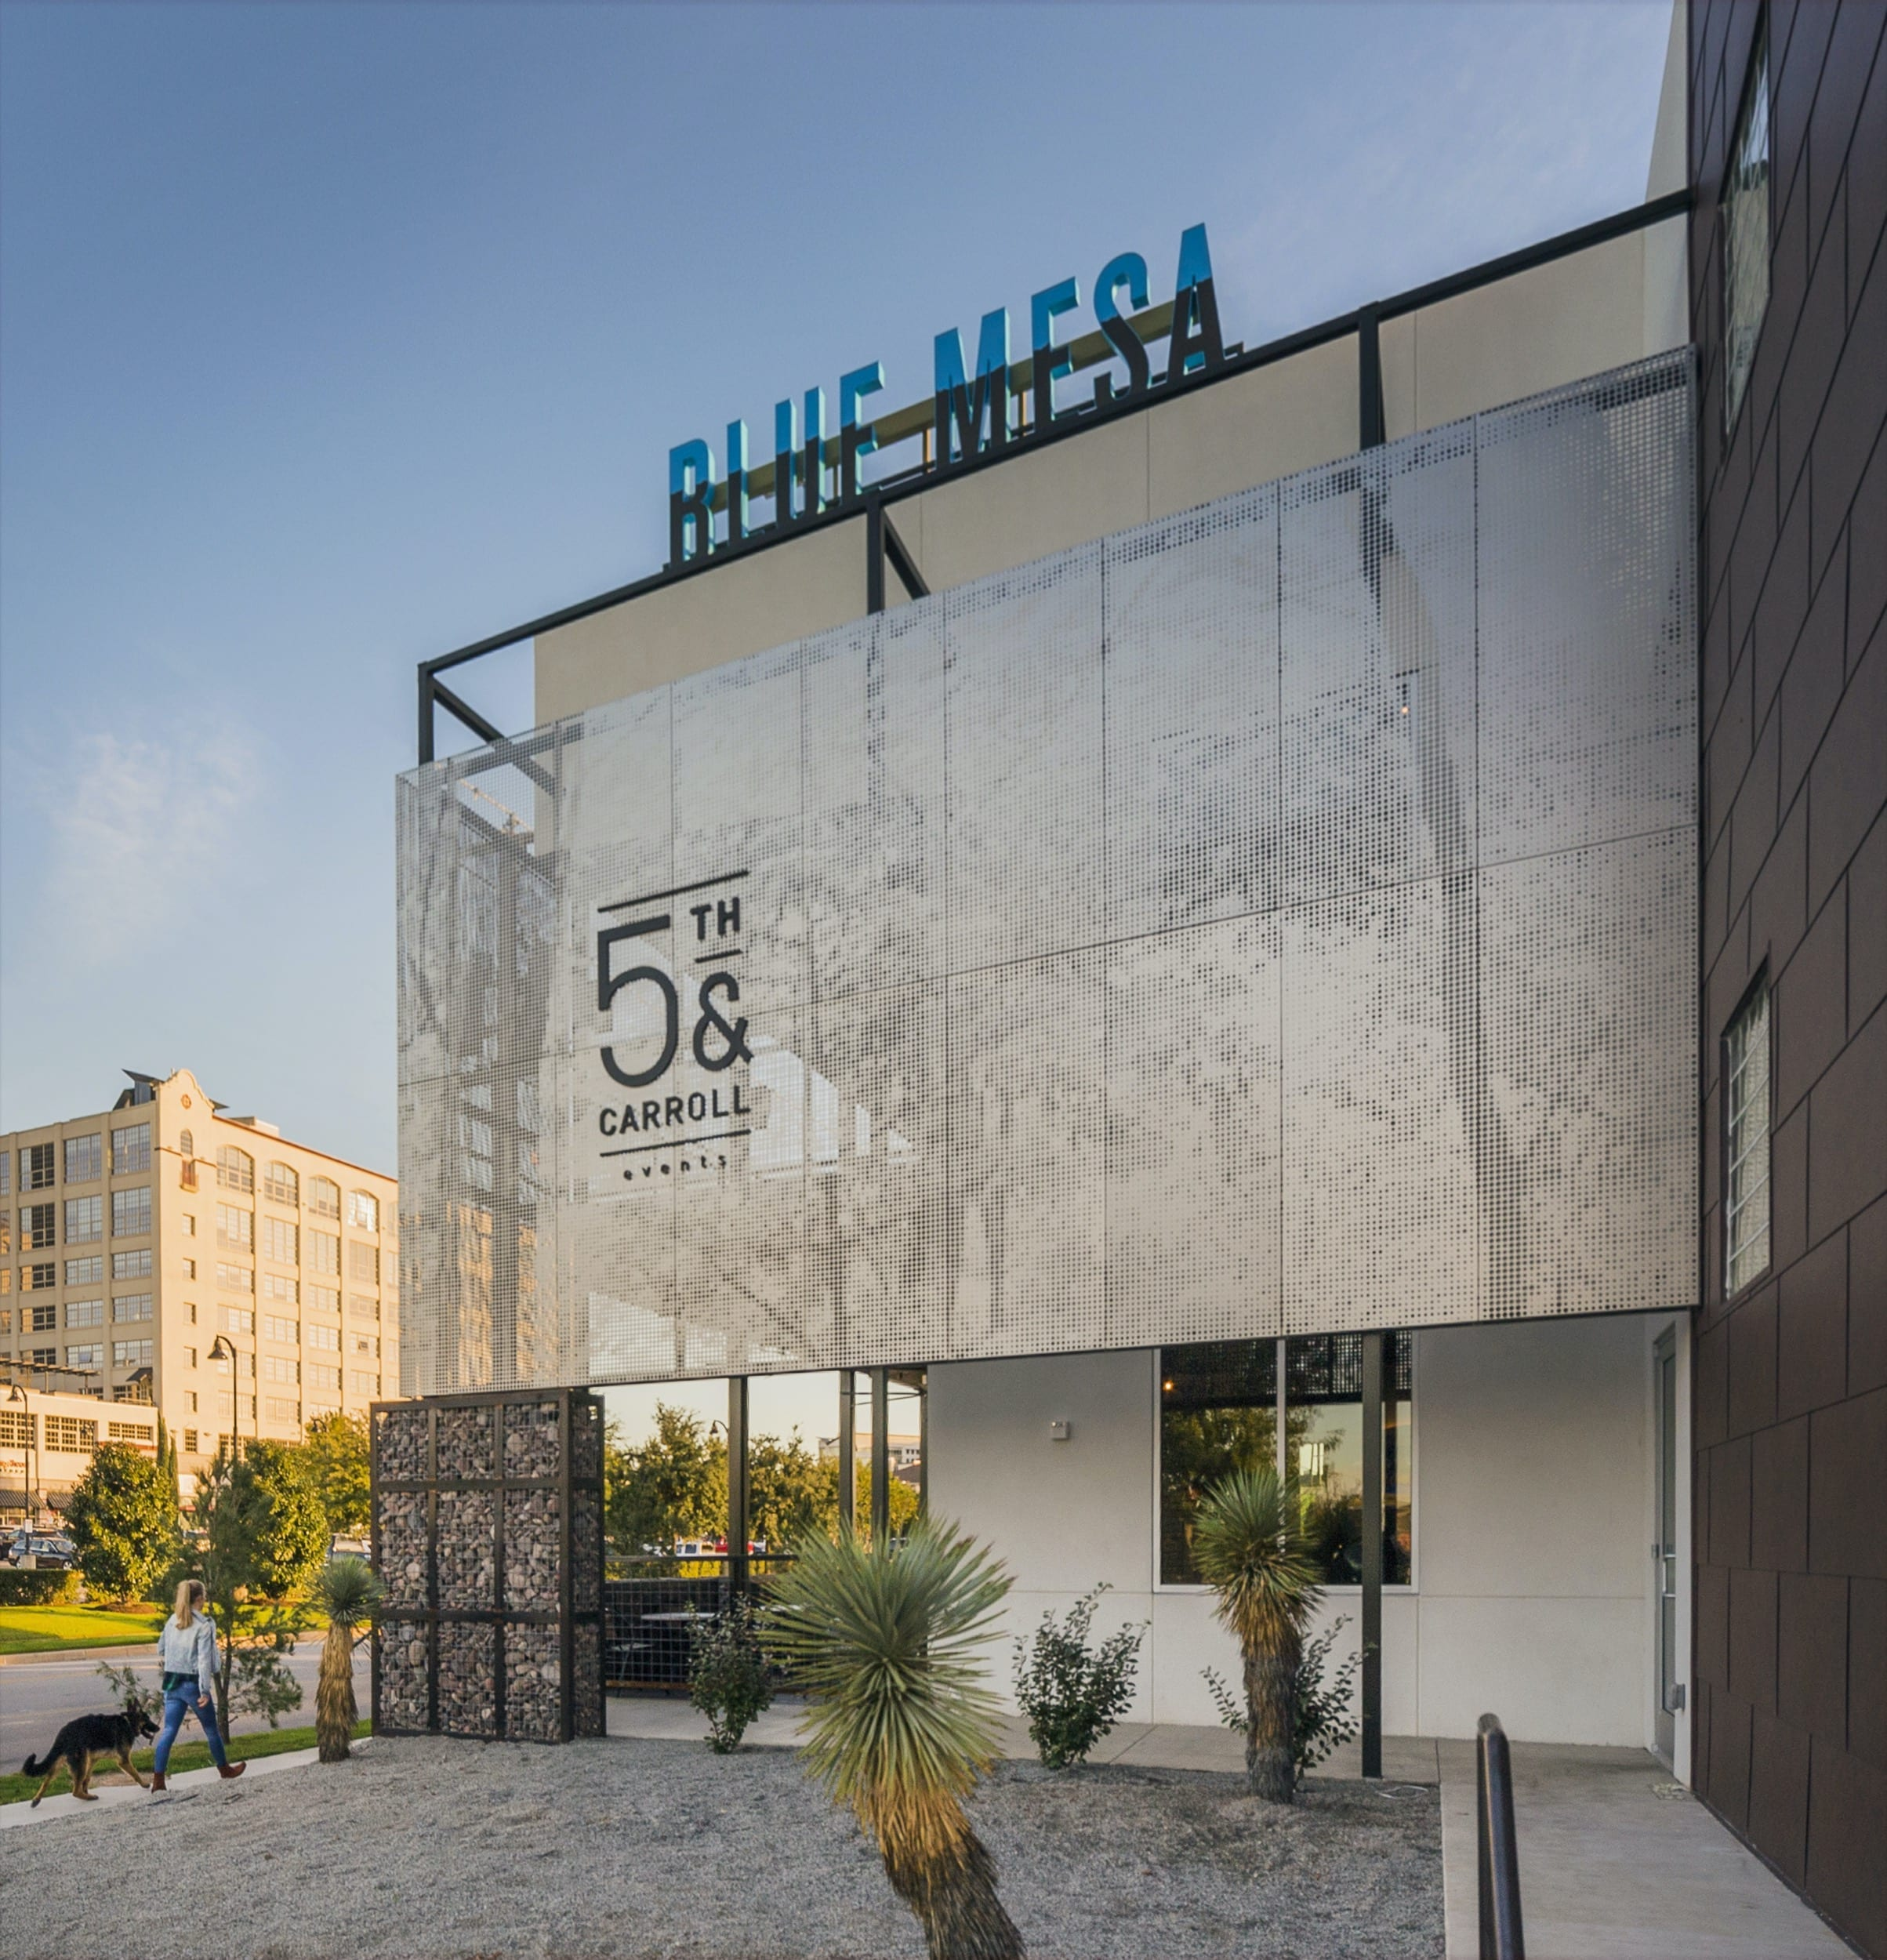 Restaurant facade and ImageWall screen in angel hair stainless steel with imagery of tree branches.